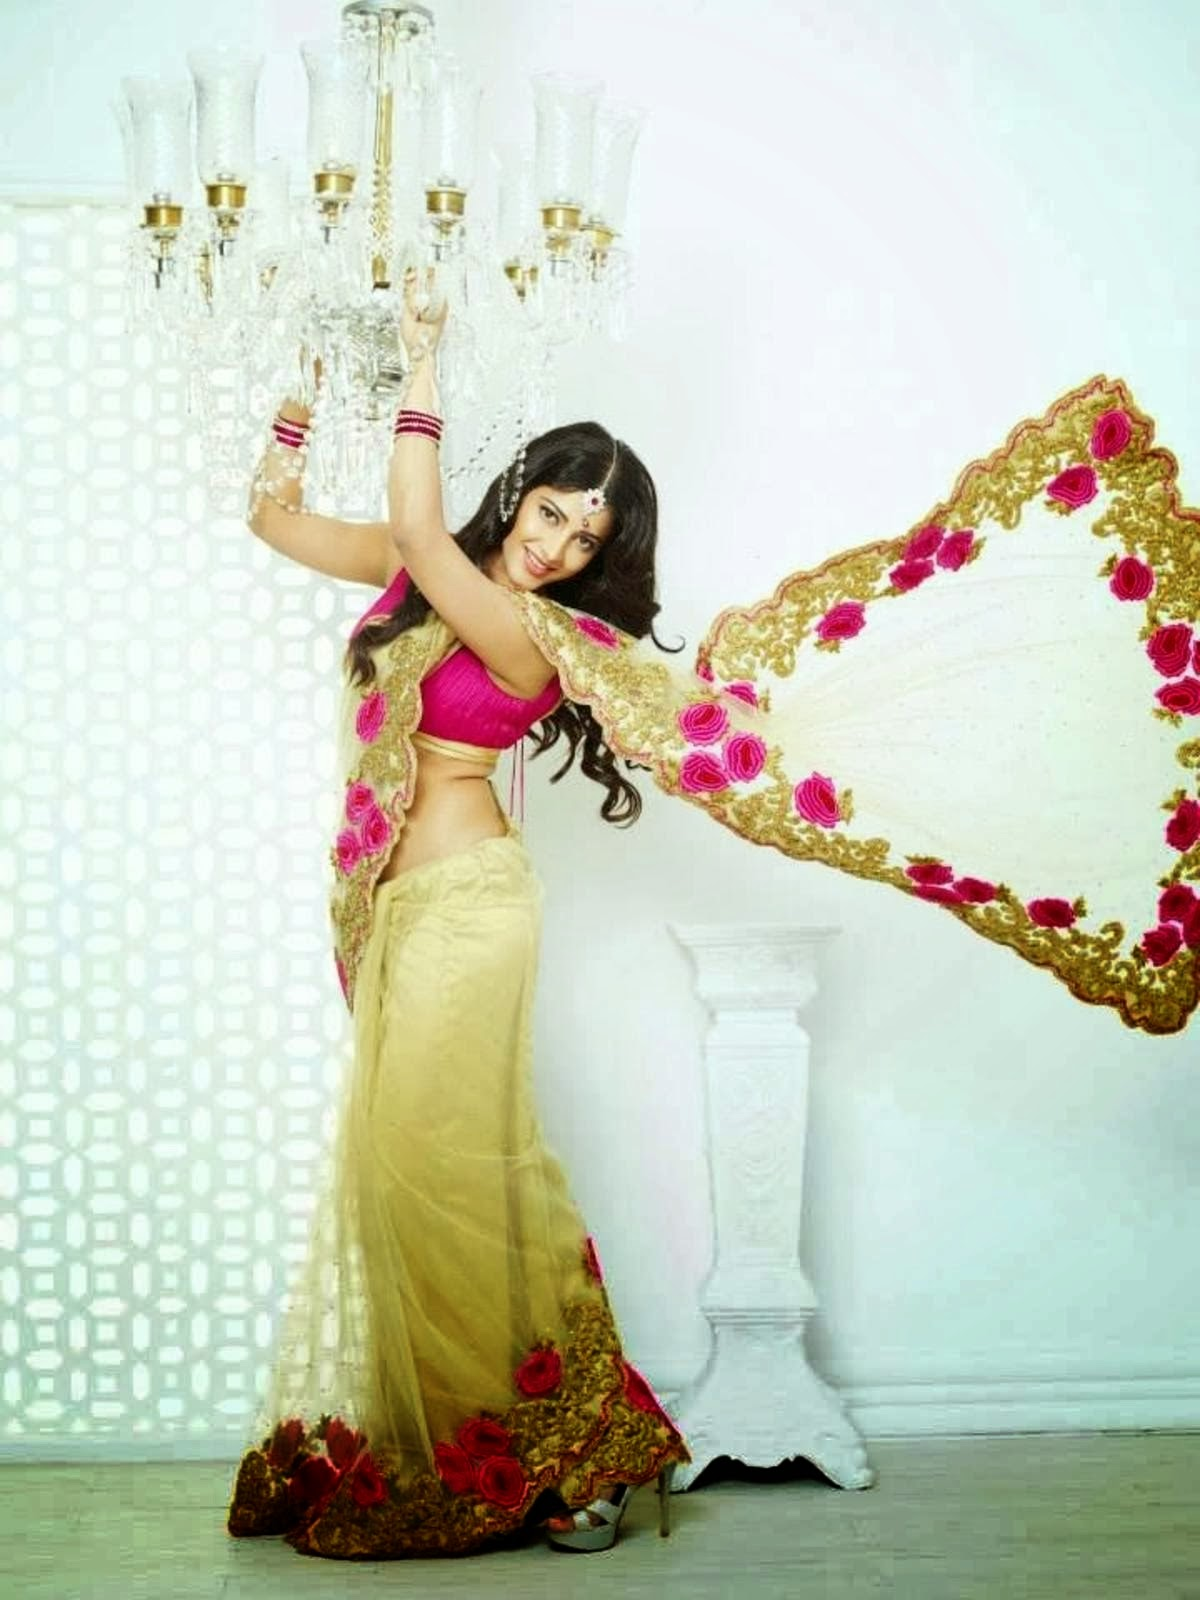 Shruti Haasan showing off her curves in saree